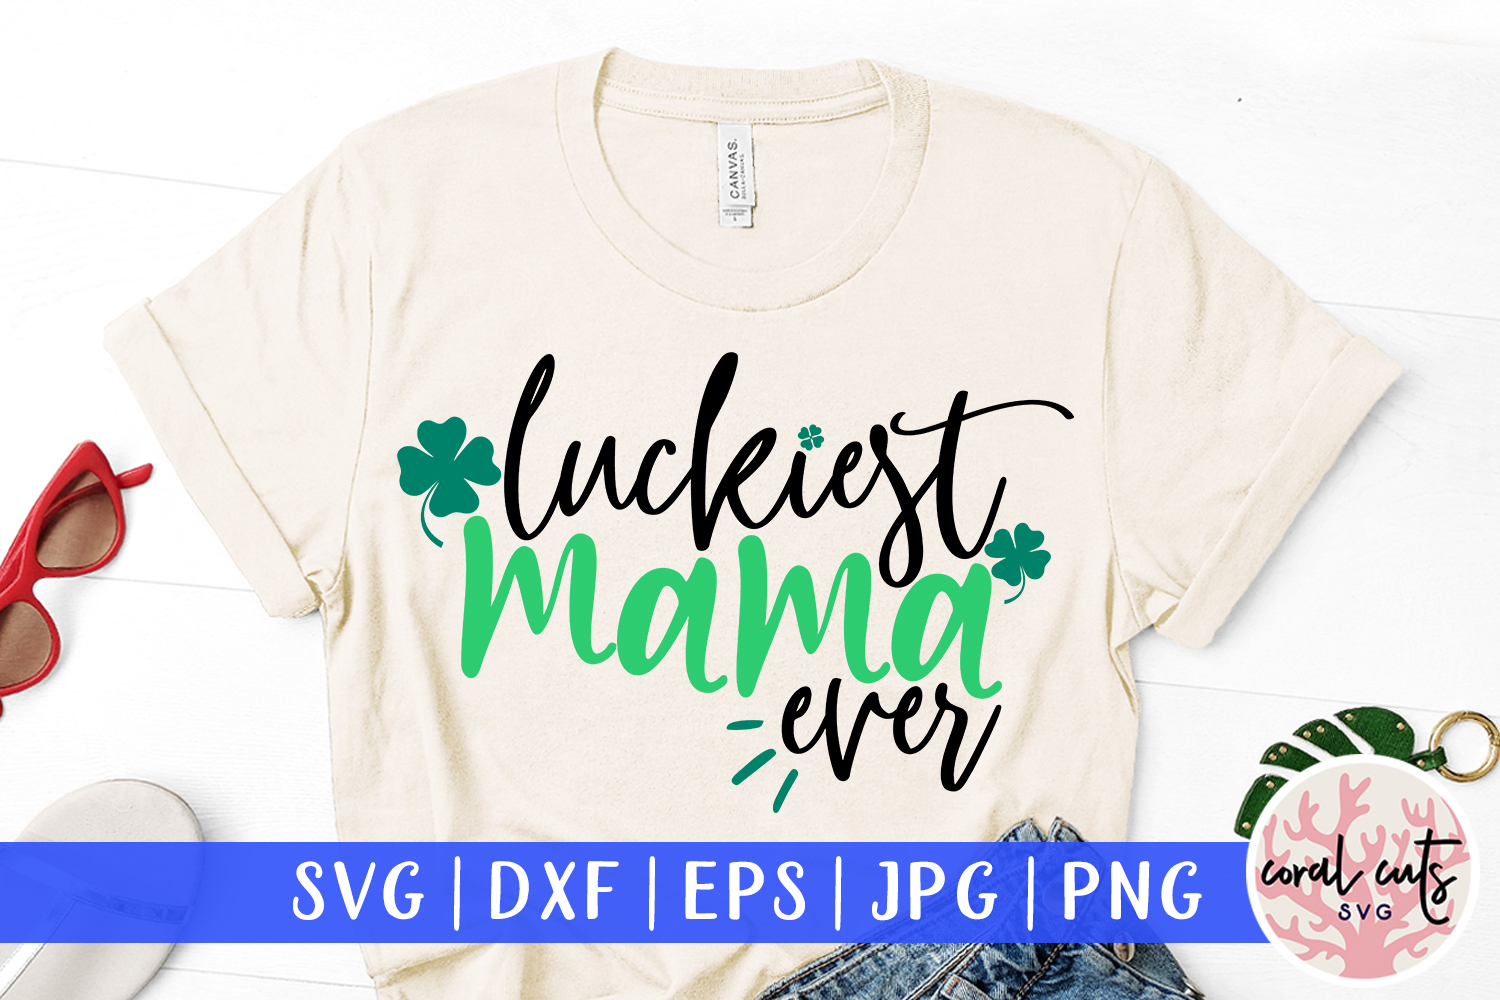 Luckiest mama ever - St. Patrick's Day SVG EPS DXF PNG example image 1